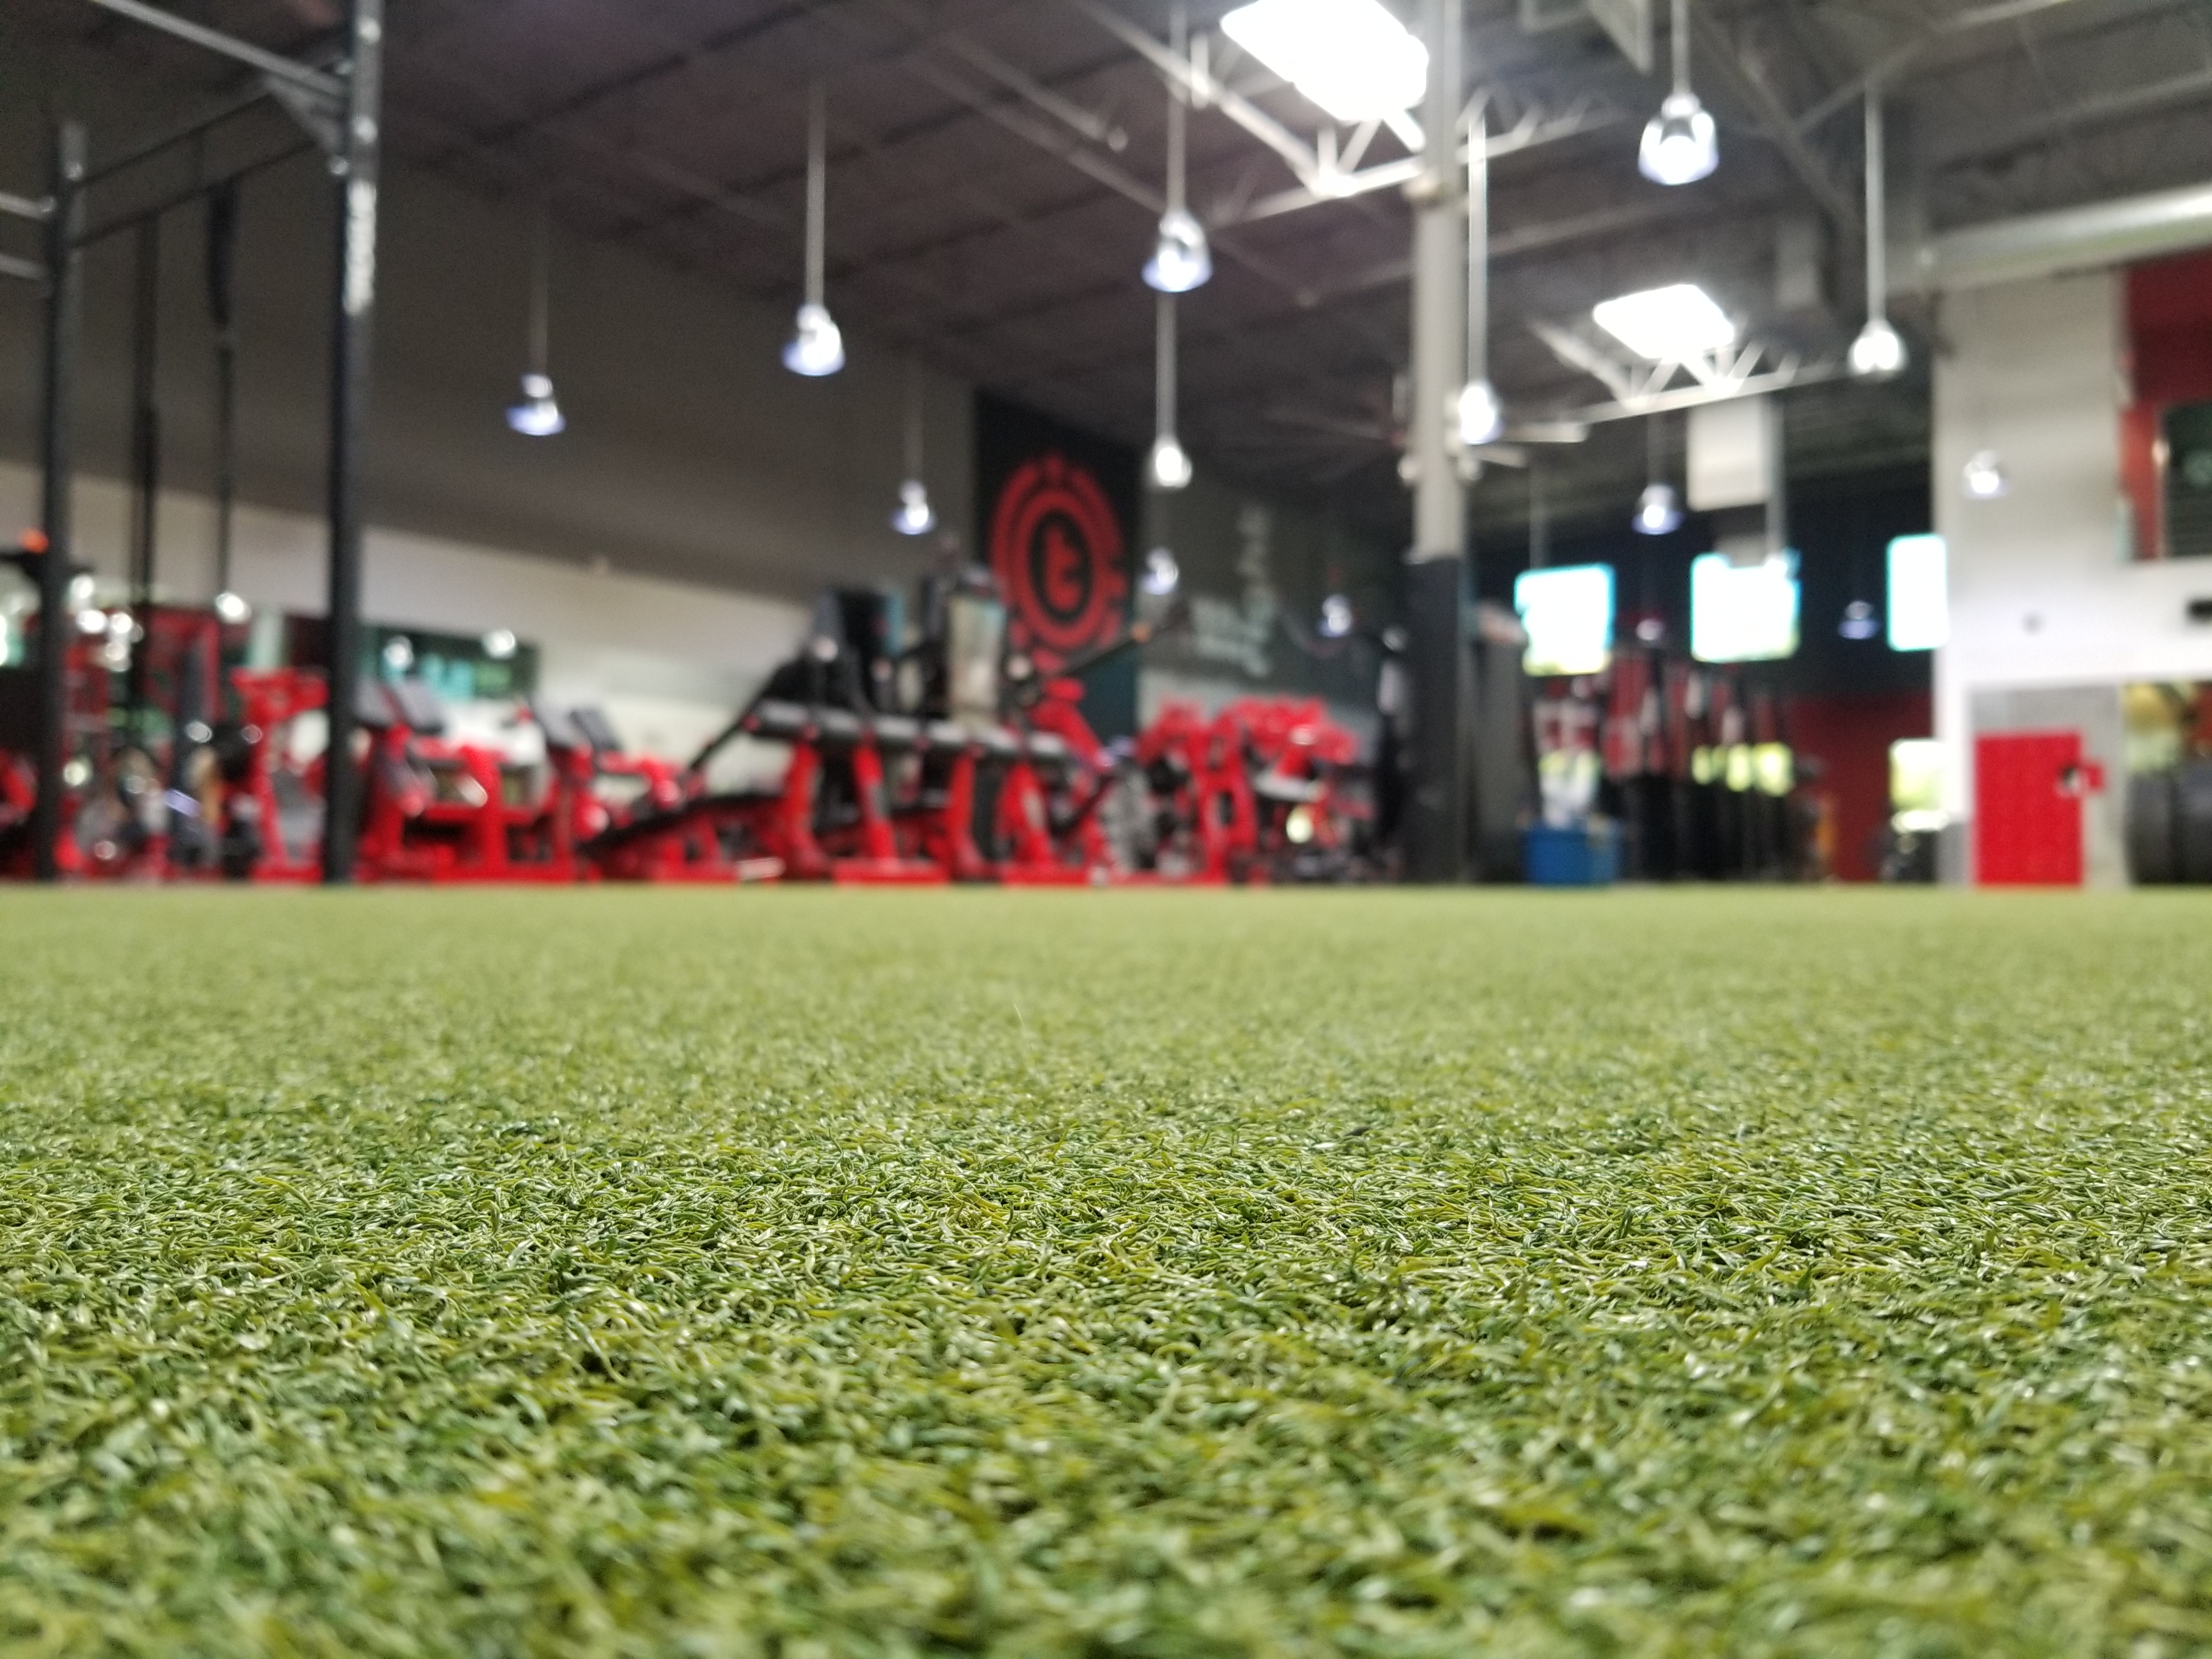 Teqneeq Fitness Center reviews | Fitness & Instruction at 10772 Thornmint Rd - San Diego CA